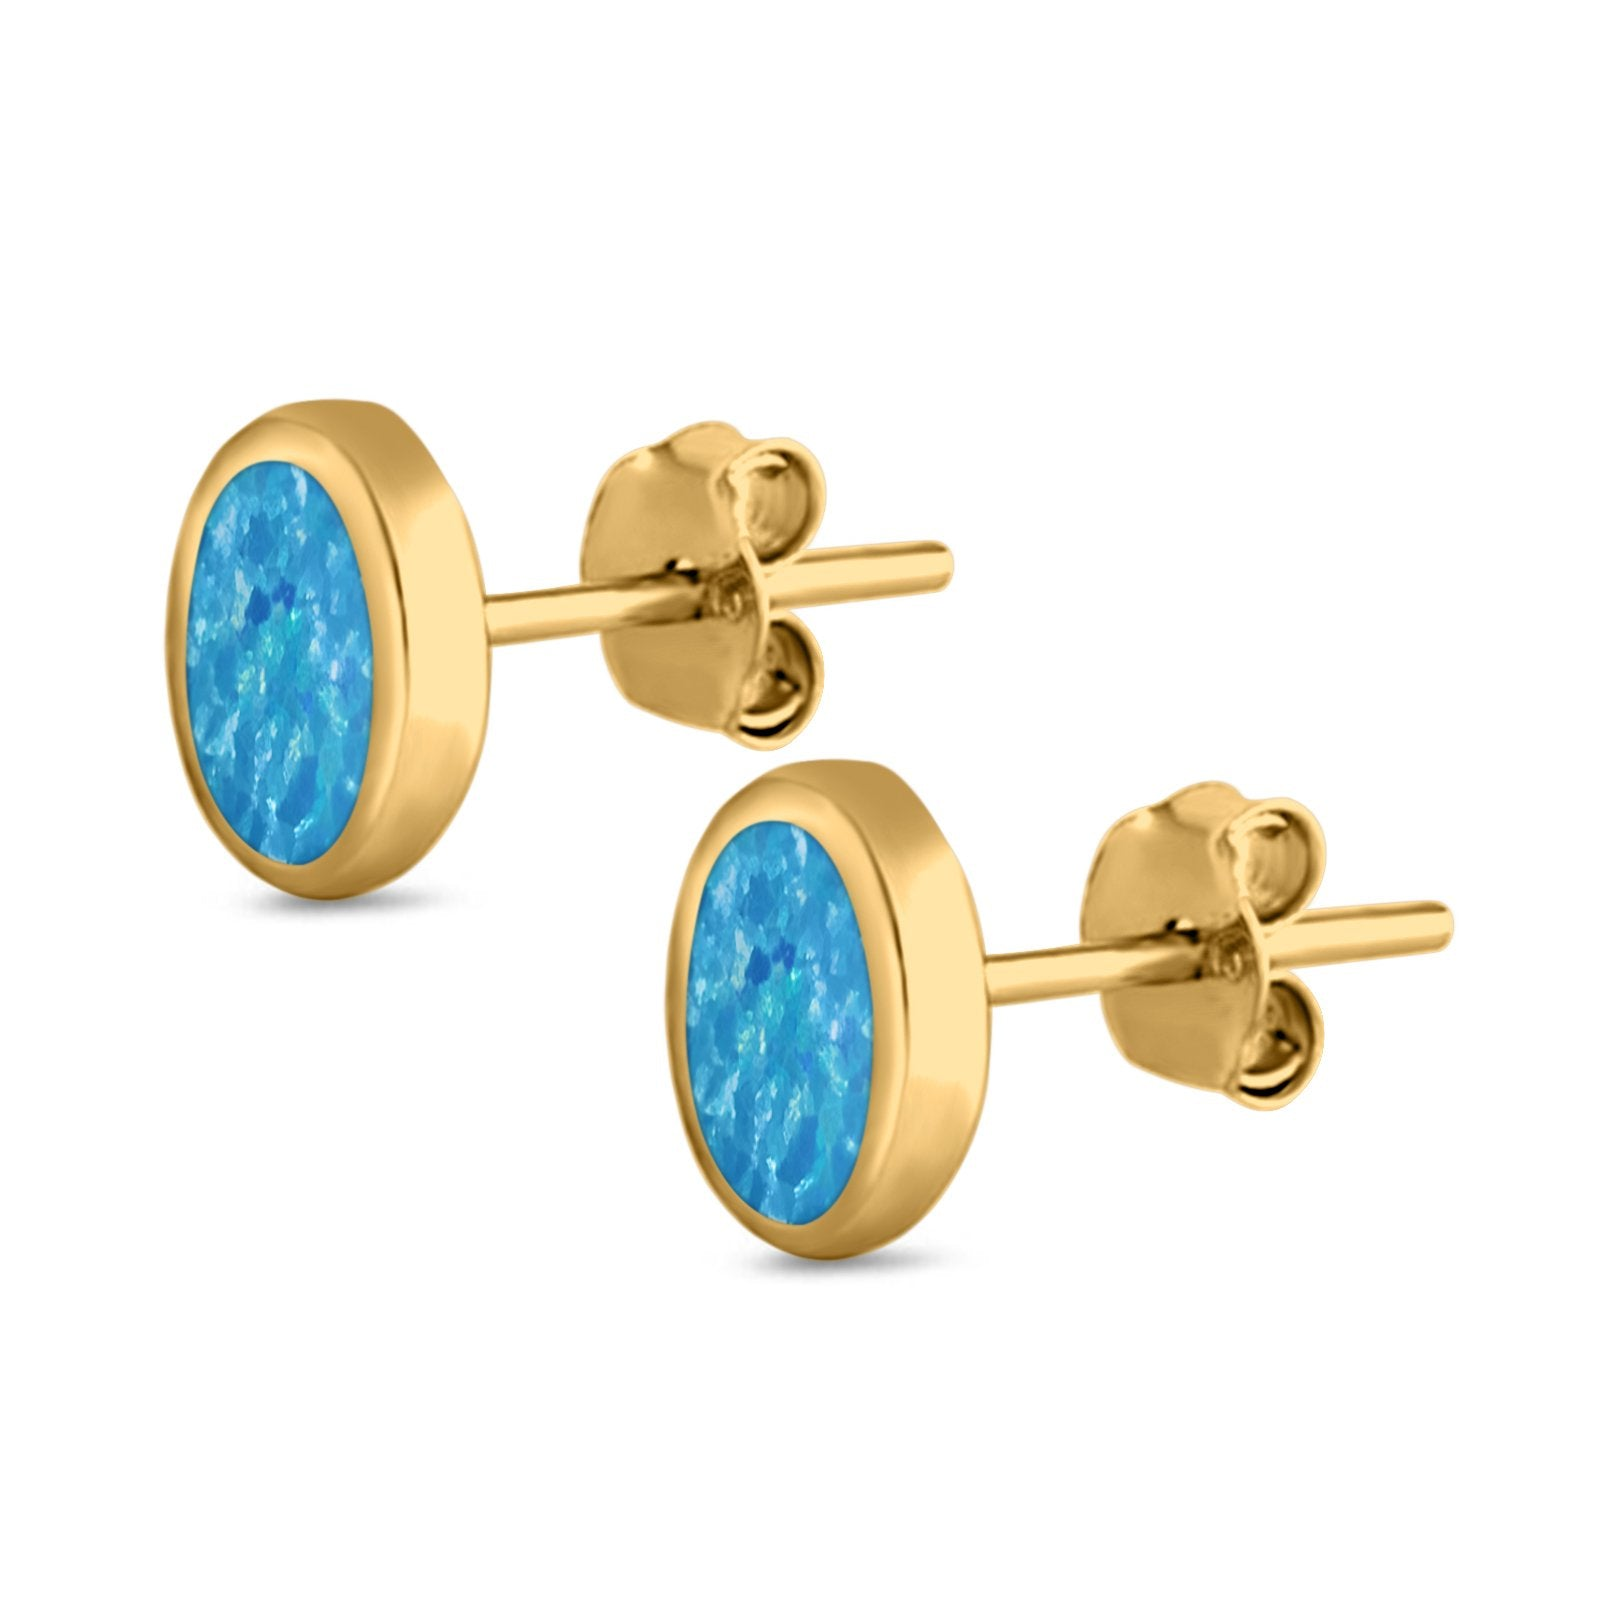 Solitaire Oval Stud Earrings Yellow Tone, Lab Created Blue Opal 925 Sterling Silver